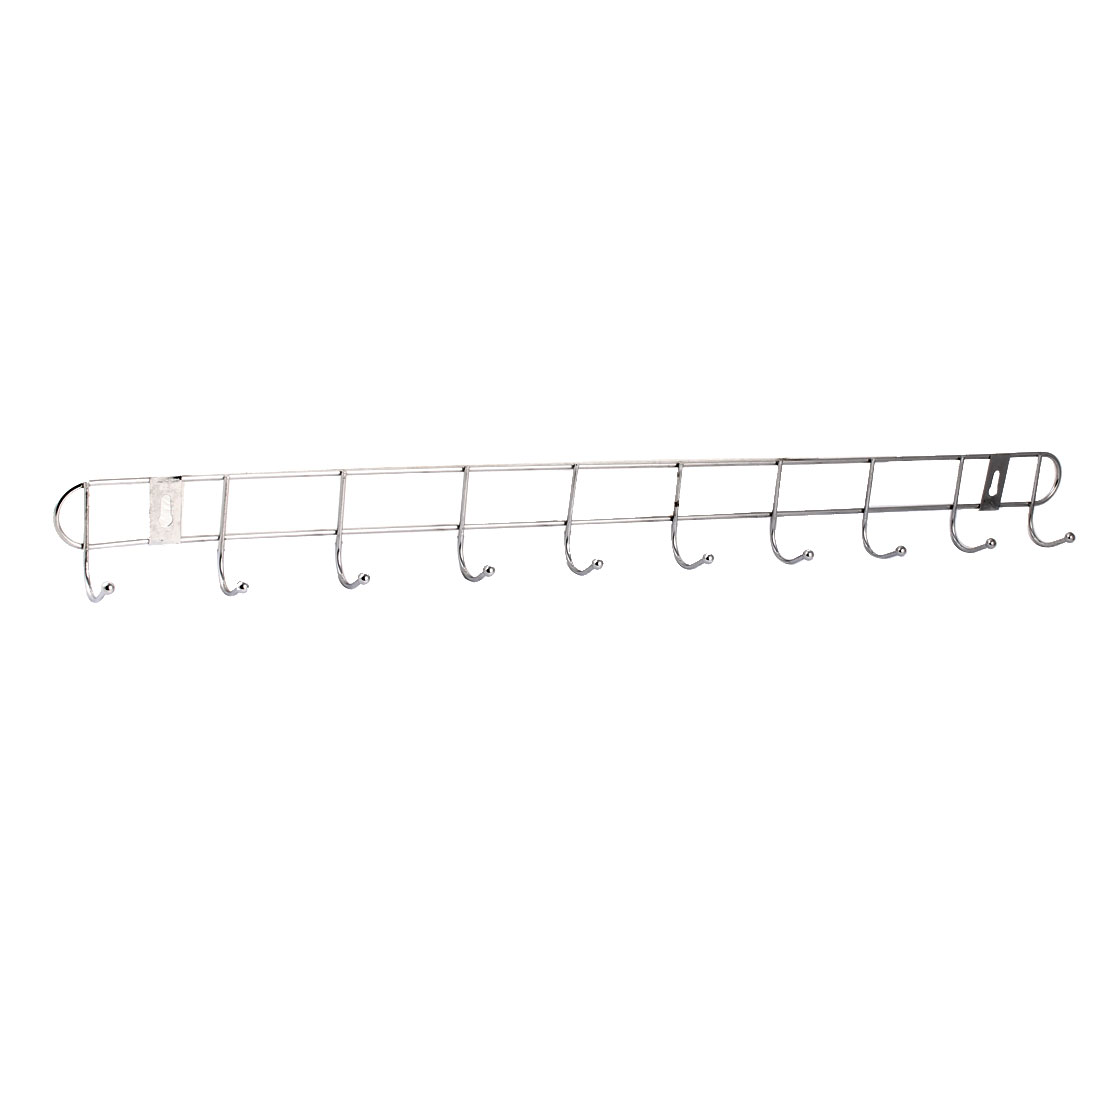 Household Metal 10 Hooks Towel Cap Clothes Rack Hanger Holder Silver Tone